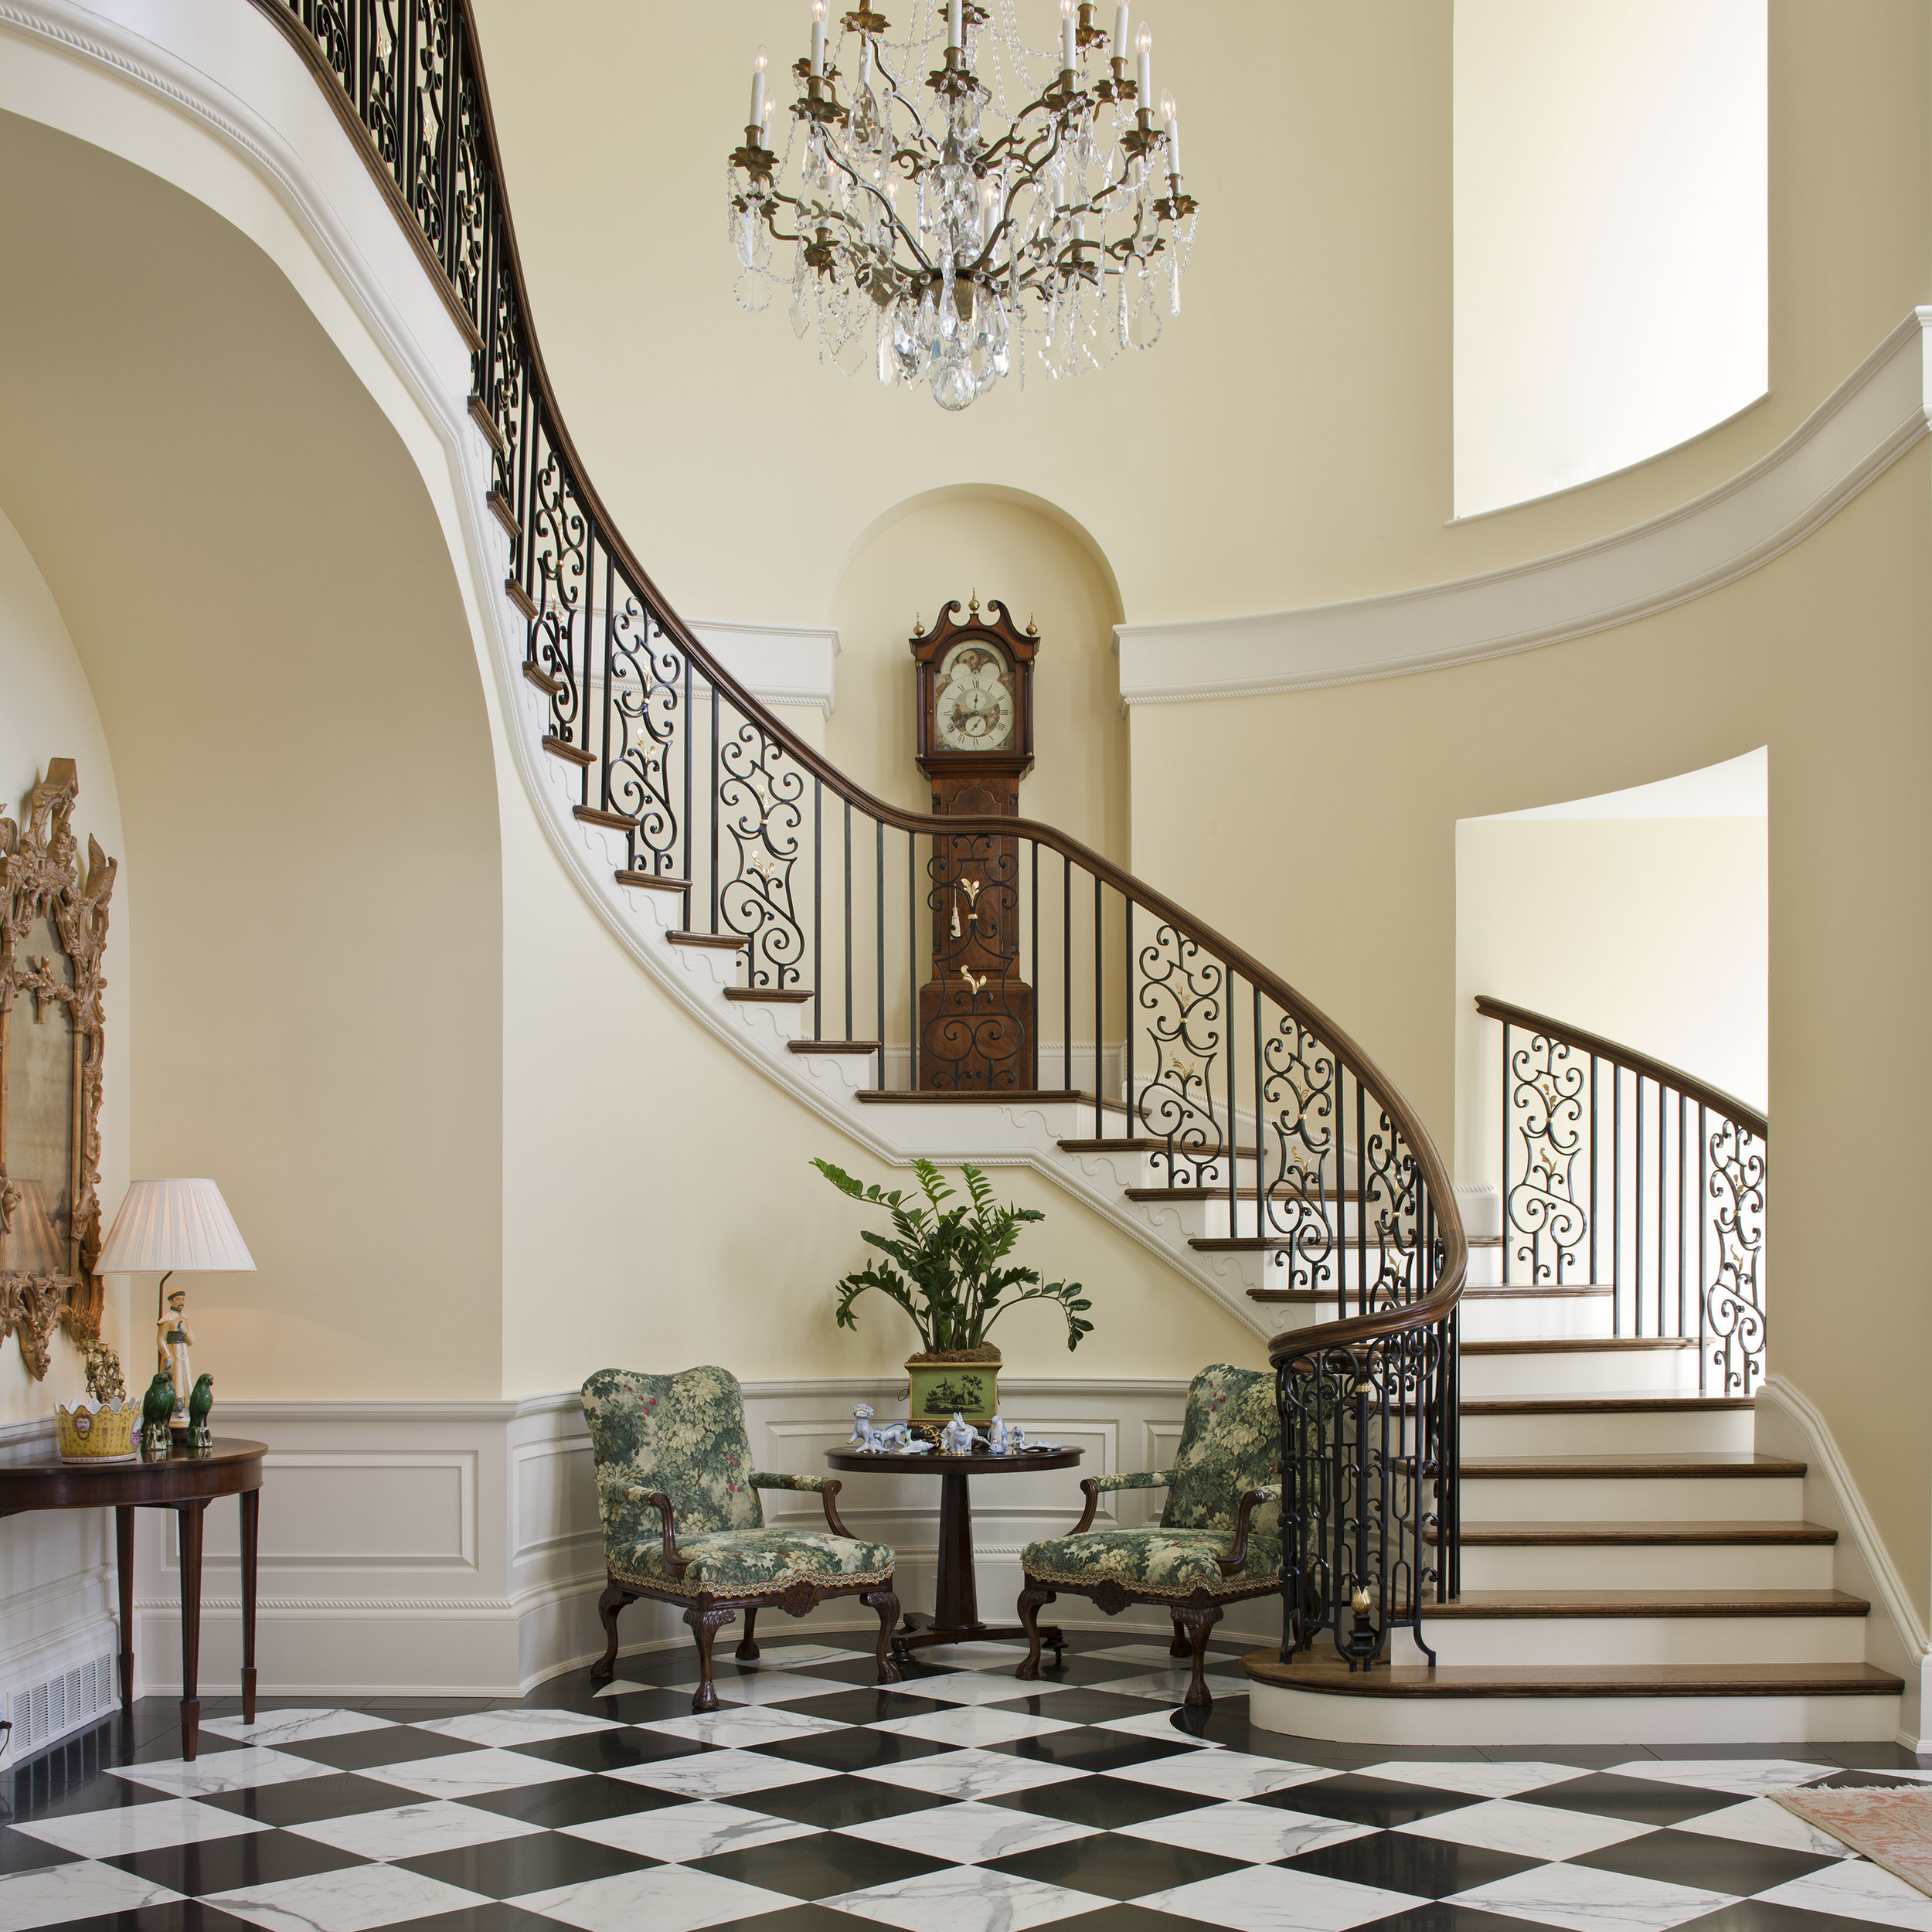 A stunning staircase, for making a grand entrance.